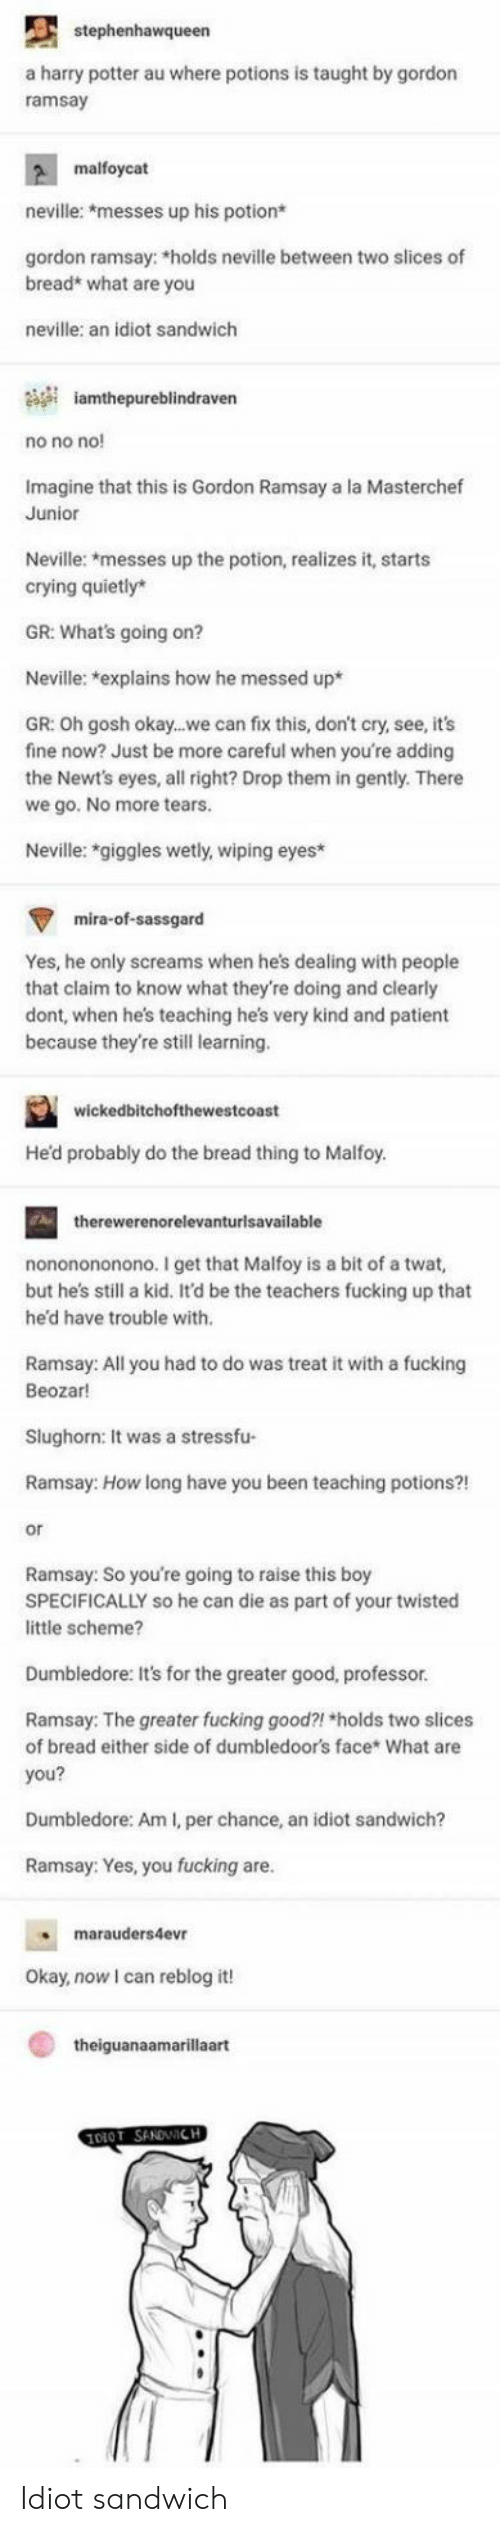 Crying, Dumbledore, and Fucking: stephenhawqueen  a harry potter au where potions is taught by gordon  ramsay  malfoycat  neville: *messes up his potion*  gordon ramsay: *holds neville between two slices of  bread* what are you  neville: an idiot sandwich  iamthepureblindraven  no no no  Imagine that this is Gordon Ramsay a la Masterchef  Junior  Neville: *messes up the potion, realizes it, starts  crying quietly*  GR: What's going on?  Neville: explains how he messed up*  GR: Oh gosh okay...we can fix this, don't cry, see, it's  fine now? Just be more careful when you're adding  the Newt's eyes, all right? Drop them in gently. There  we go. No more tears  Neville: *giggles wetly, wiping eyes  mira-of-sassgard  Yes, he only screams when he's dealing with people  that claim to know what they're doing and clearly  dont, when hes teaching he's very kind and patient  because they're stil learning  wickedbitchofthewestcoast  Hed probably do the bread thing to Malfoy  therewerenorelevanturlsavailable  nononononono. I get that Malfoy is a bit of a twat,  but hes still a kid. It'd be the teachers fucking up that  he'd have trouble with  Ramsay: All you had to do was treat it with a fucking  Beozar!  Slughorn: It was a stressfu-  Ramsay: How long have you been teaching potions?!  or  Ramsay: So you're going to raise this boy  SPECIFICALLY so he can die as part of your twisted  little scheme?  Dumbledore: It's for the greater good, professor  Ramsay: The greater fucking good?! holds two slices  of bread either side of dumbledoor's face* What are  you?  Dumbledore: Am I, per chance, an idiot sandwich?  Ramsay: Yes, you fucking are  marauders4evr  Okay, now I can reblog it!  theiguanaamarillaart Idiot sandwich